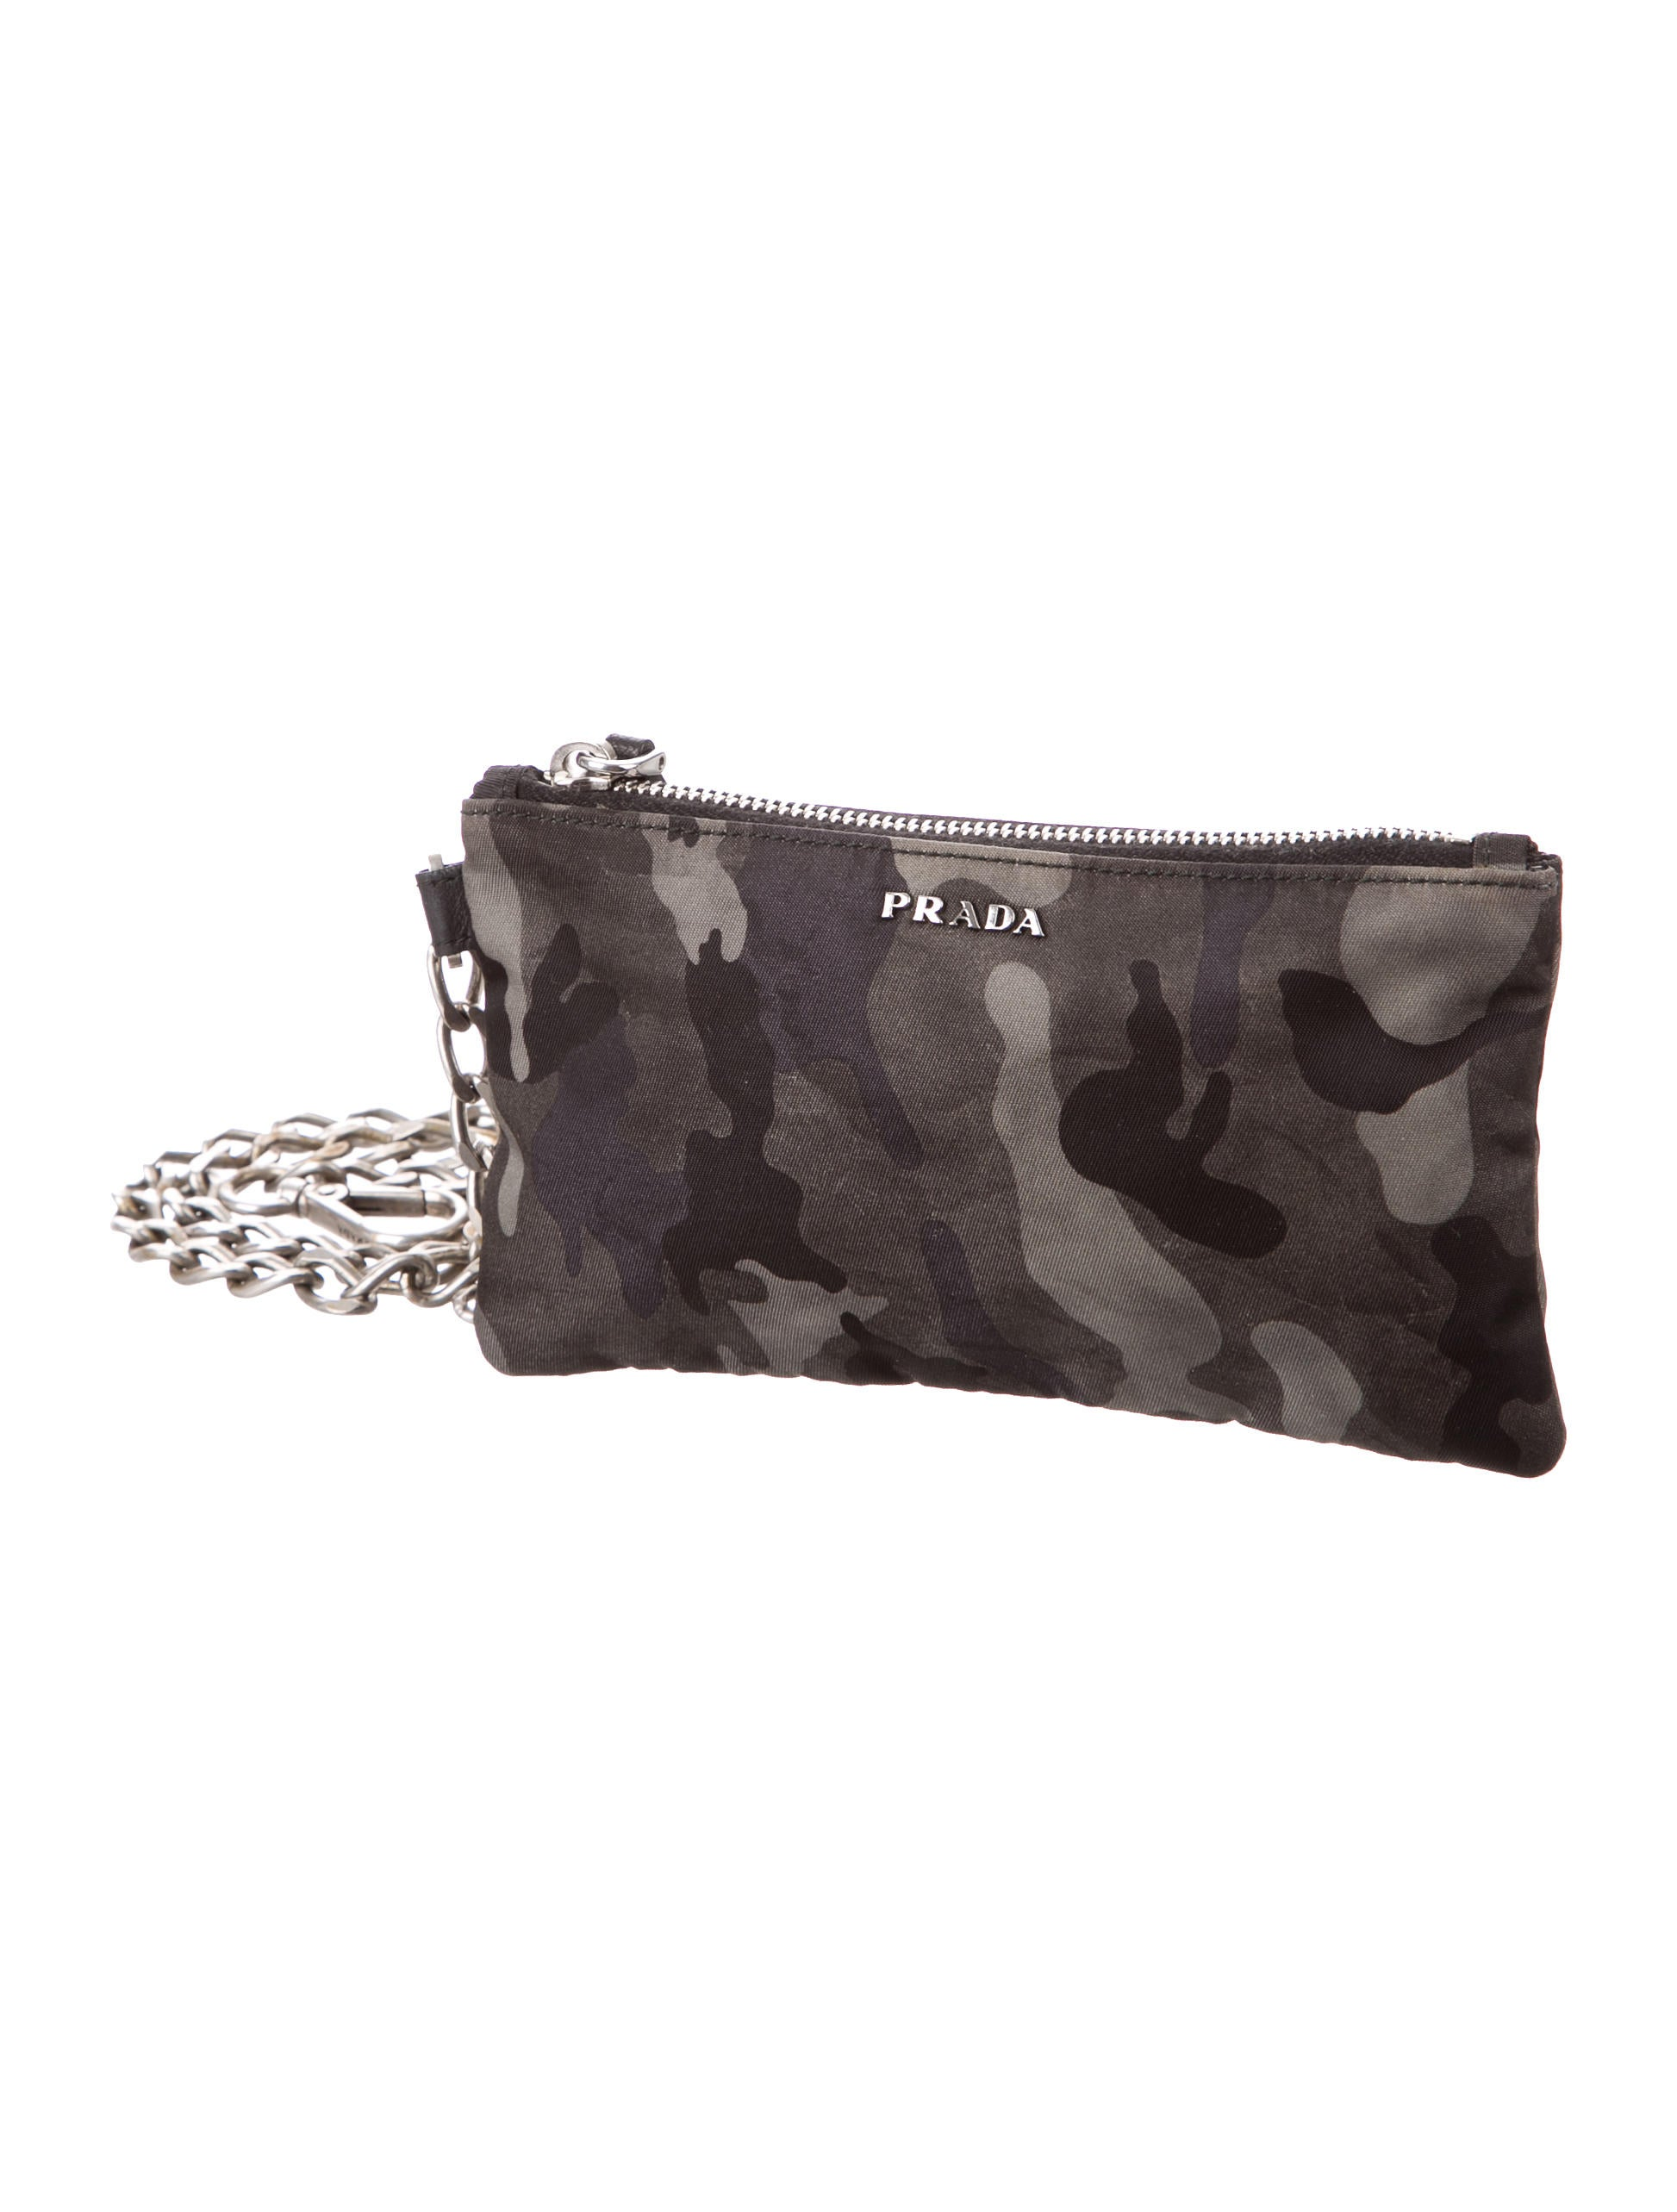 83cc672f97e5 Mens Prada Wallet With Chain | Stanford Center for Opportunity ...